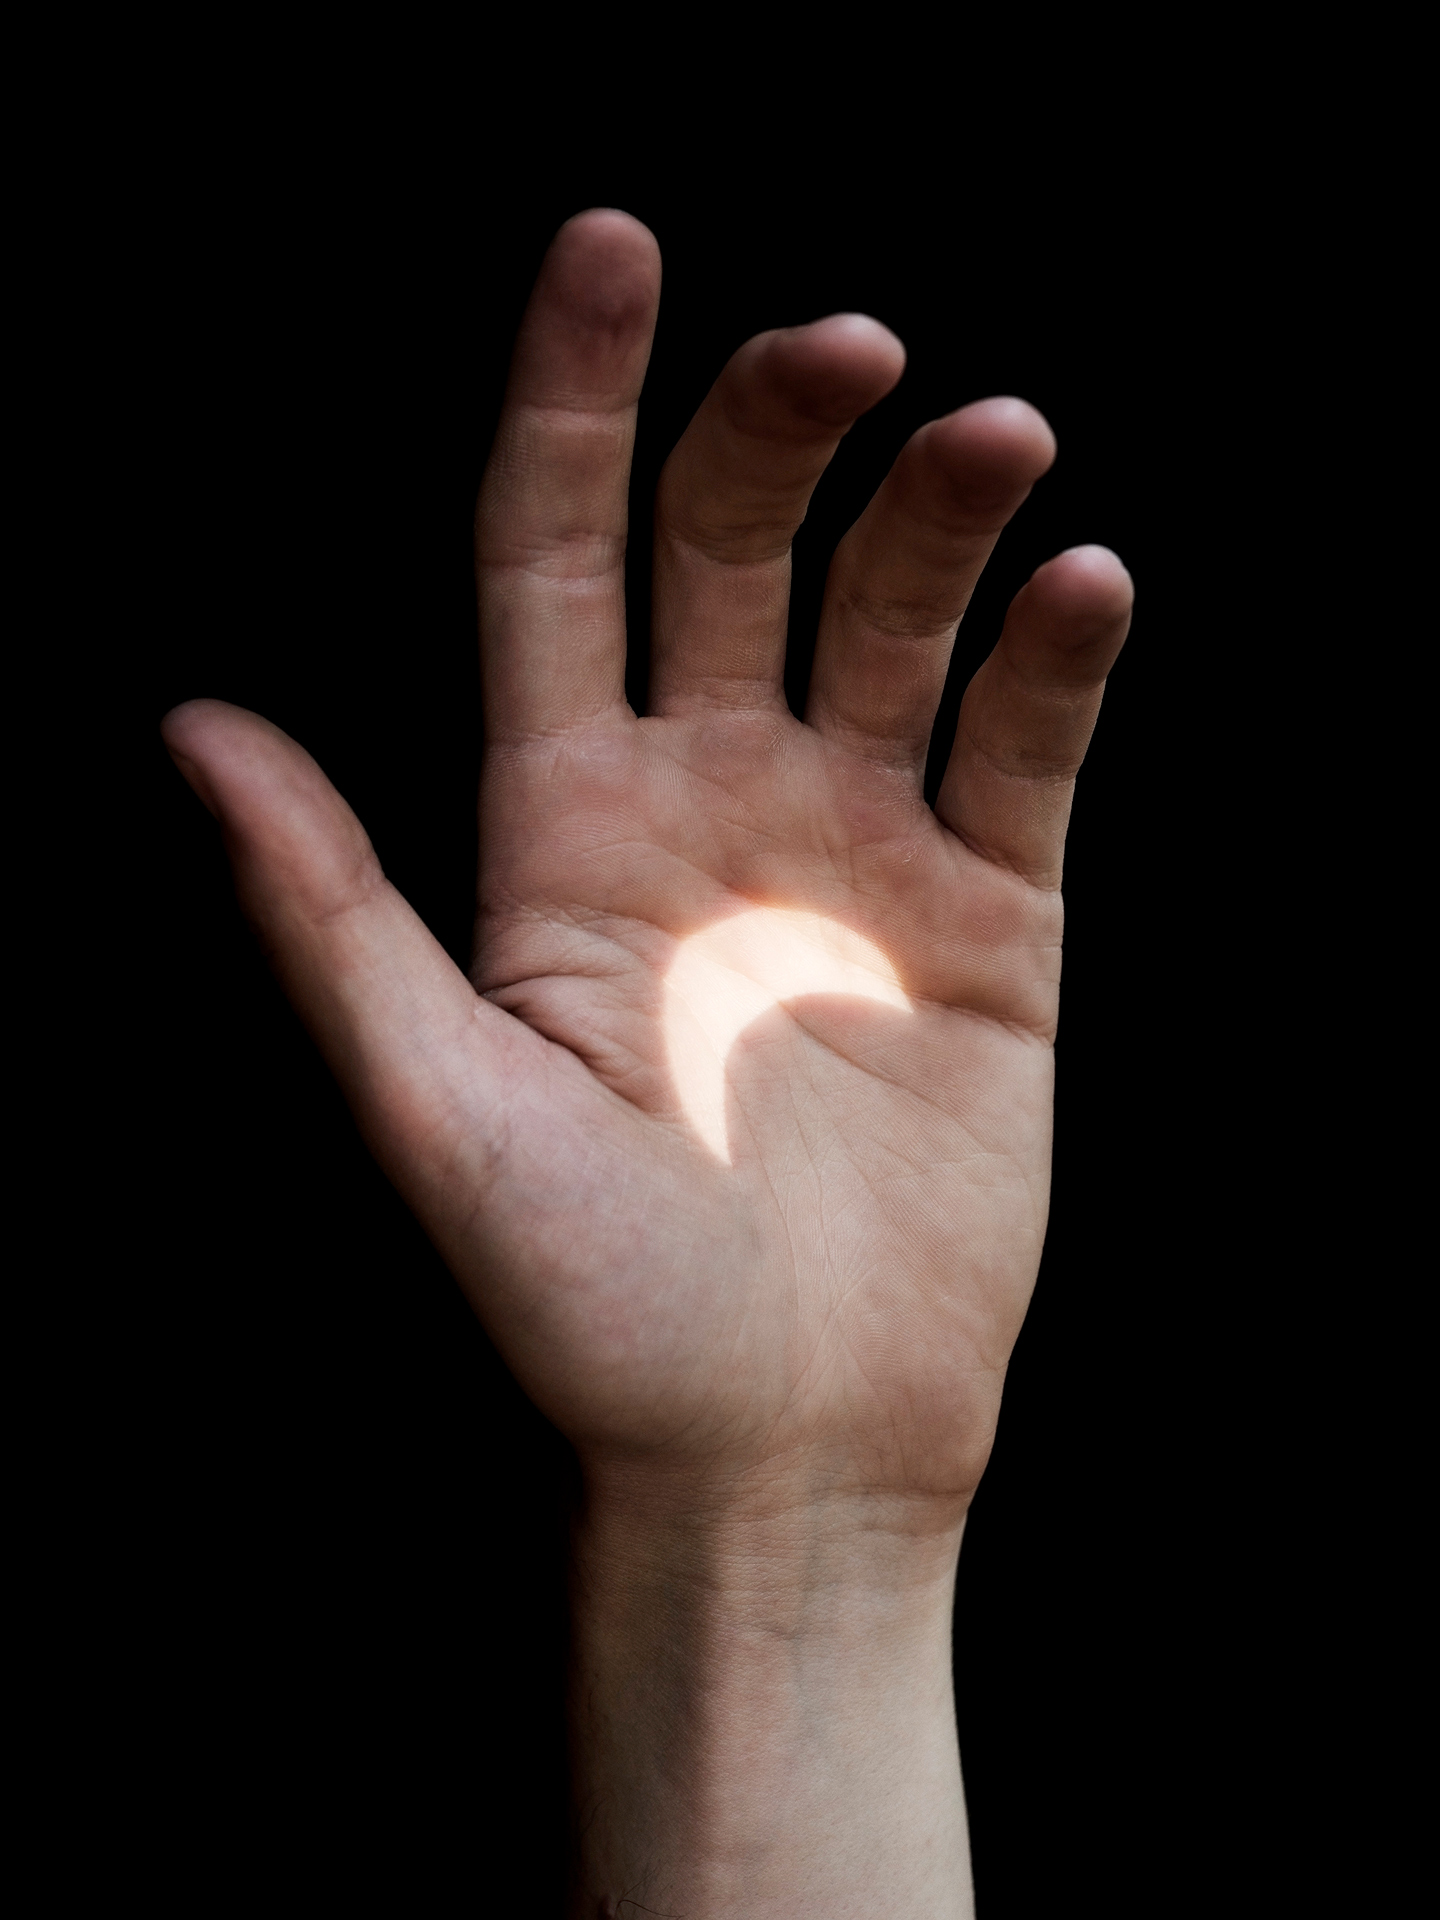 hand surrounded by darkness with moon crescent in light in the palm by Guillaume Simoneau for Solar Eclipse